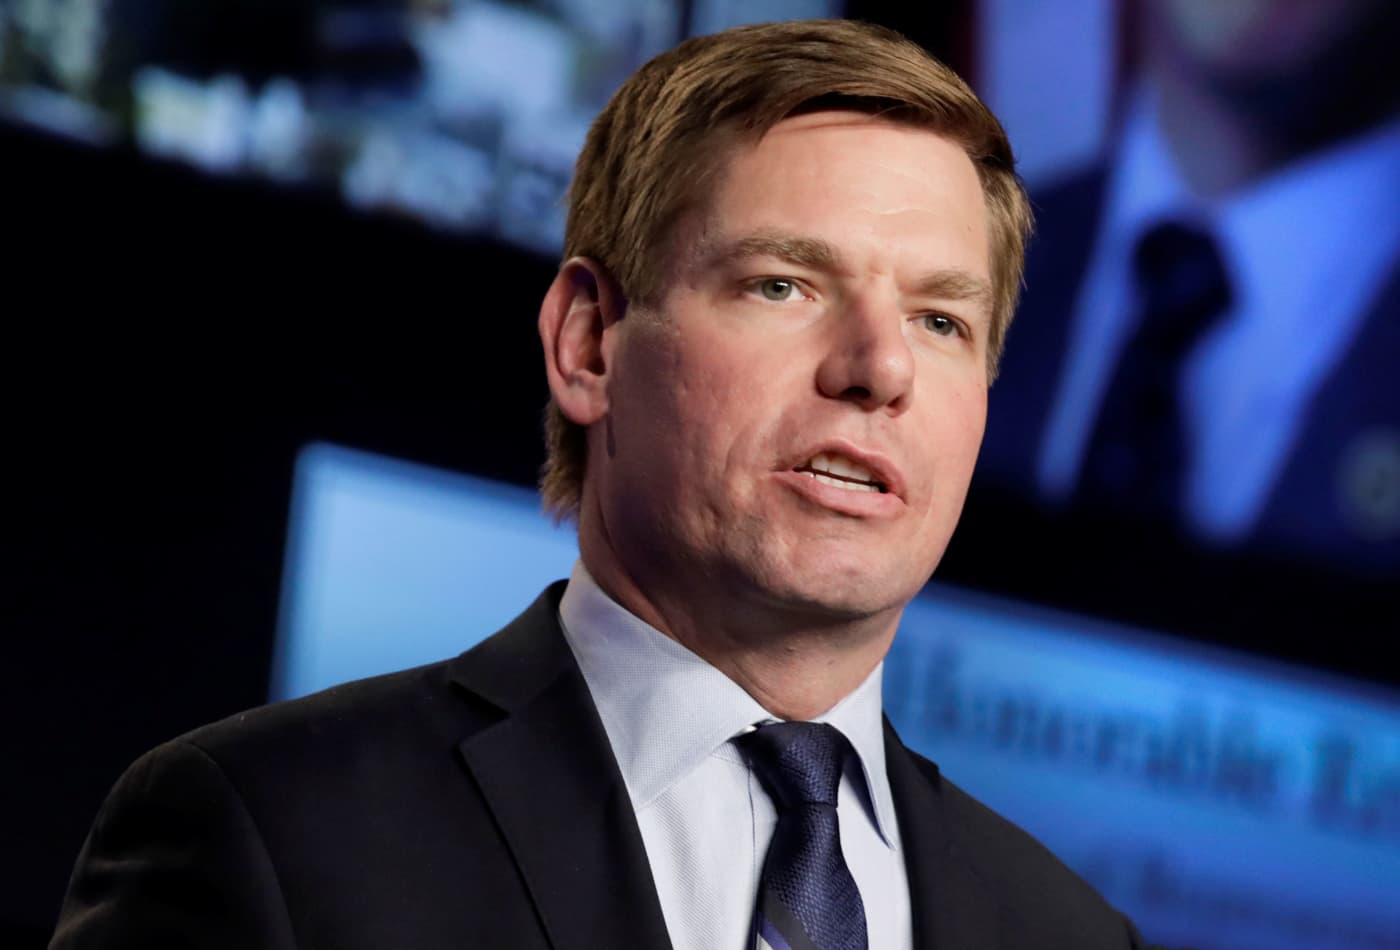 Rep. Eric Swalwell on Elon Musk's battle to reopen California factory